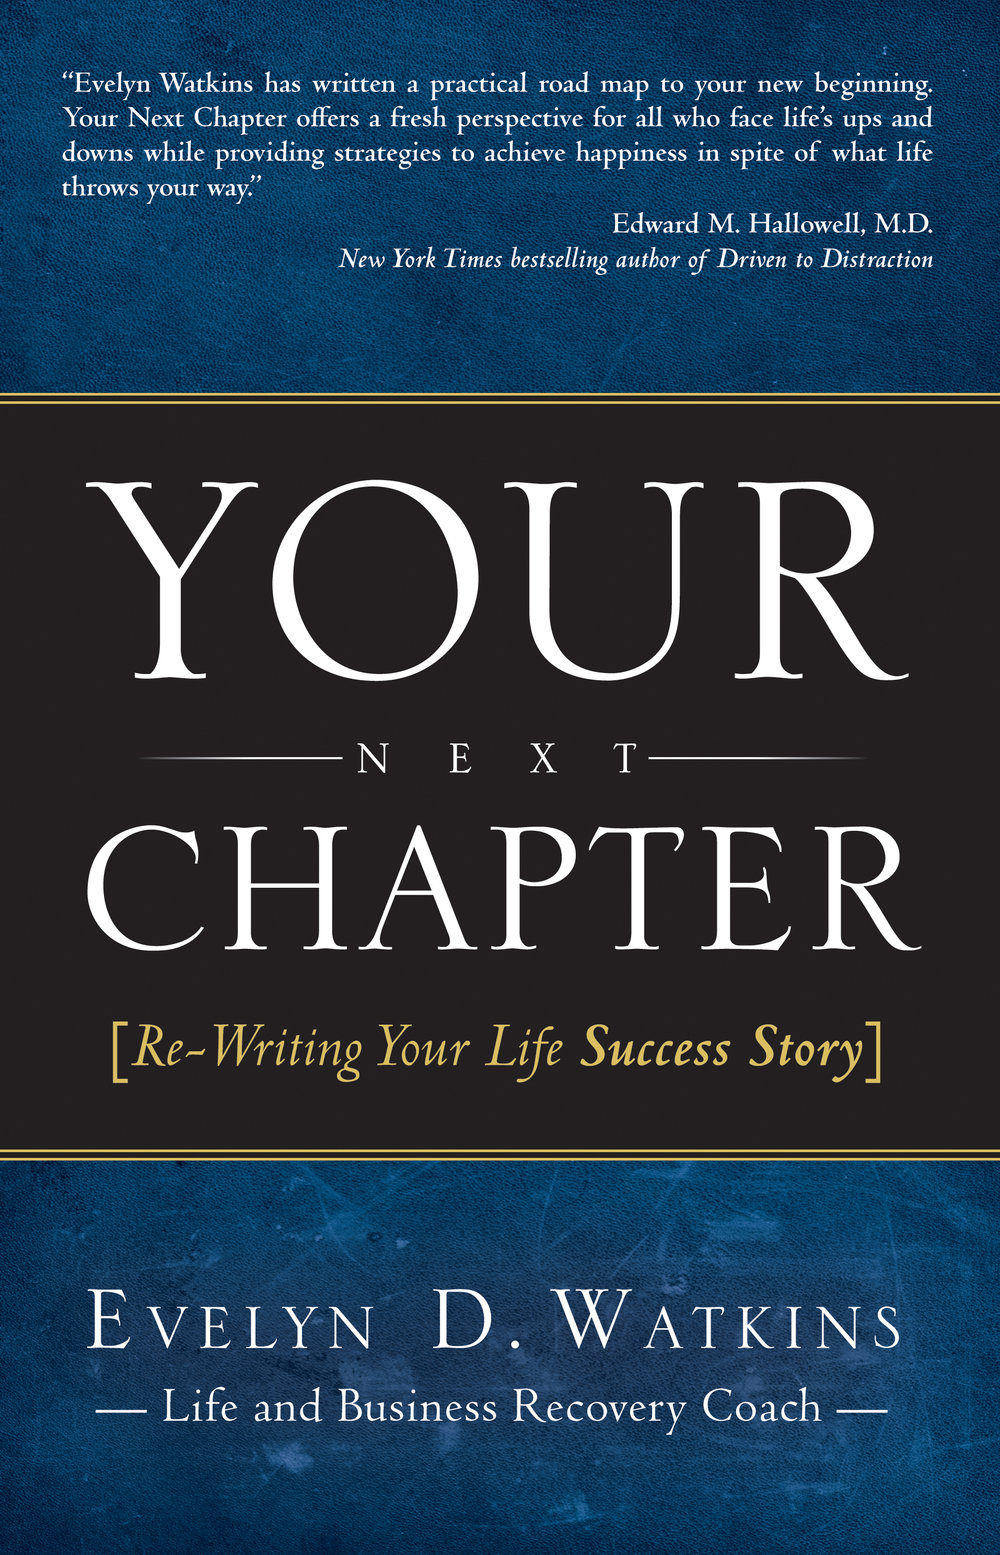 Your Next Chapter - By evelyn d. watkins